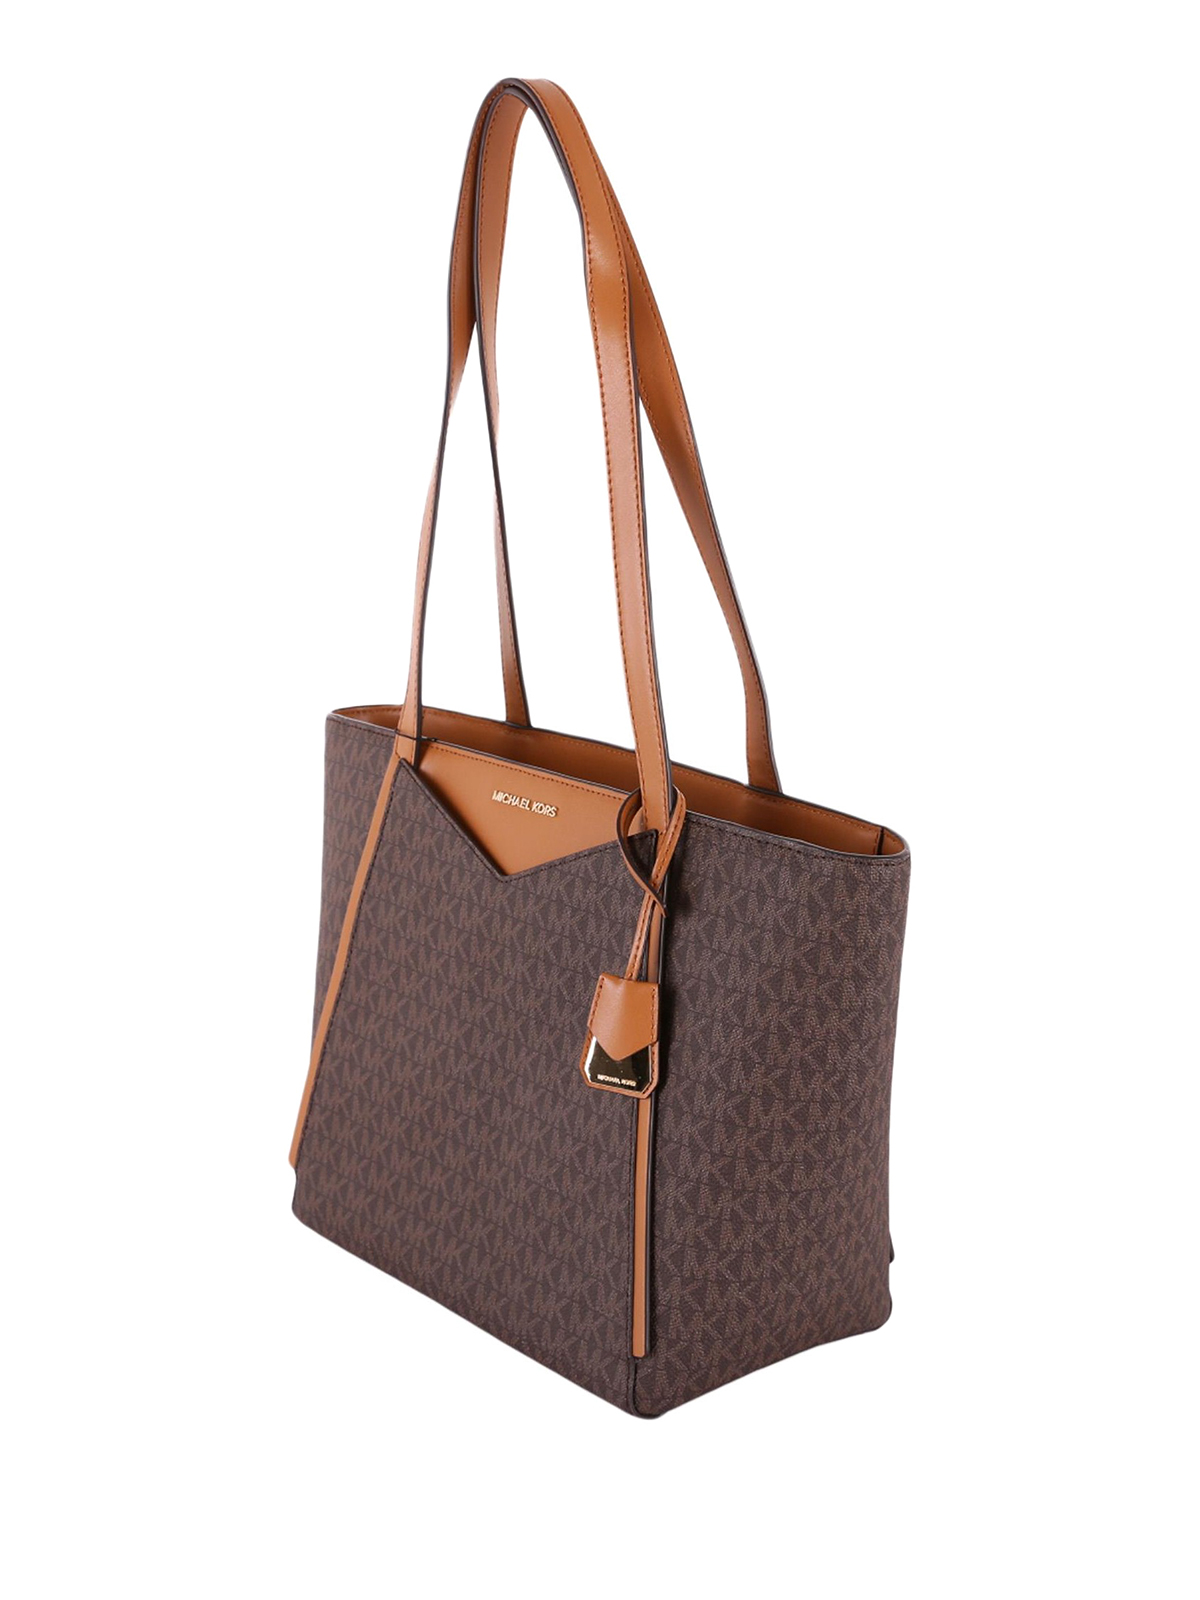 146fd7be86b7 Michael Kors - Whitney small brown tote - totes bags - 30S8GN1T1B 200